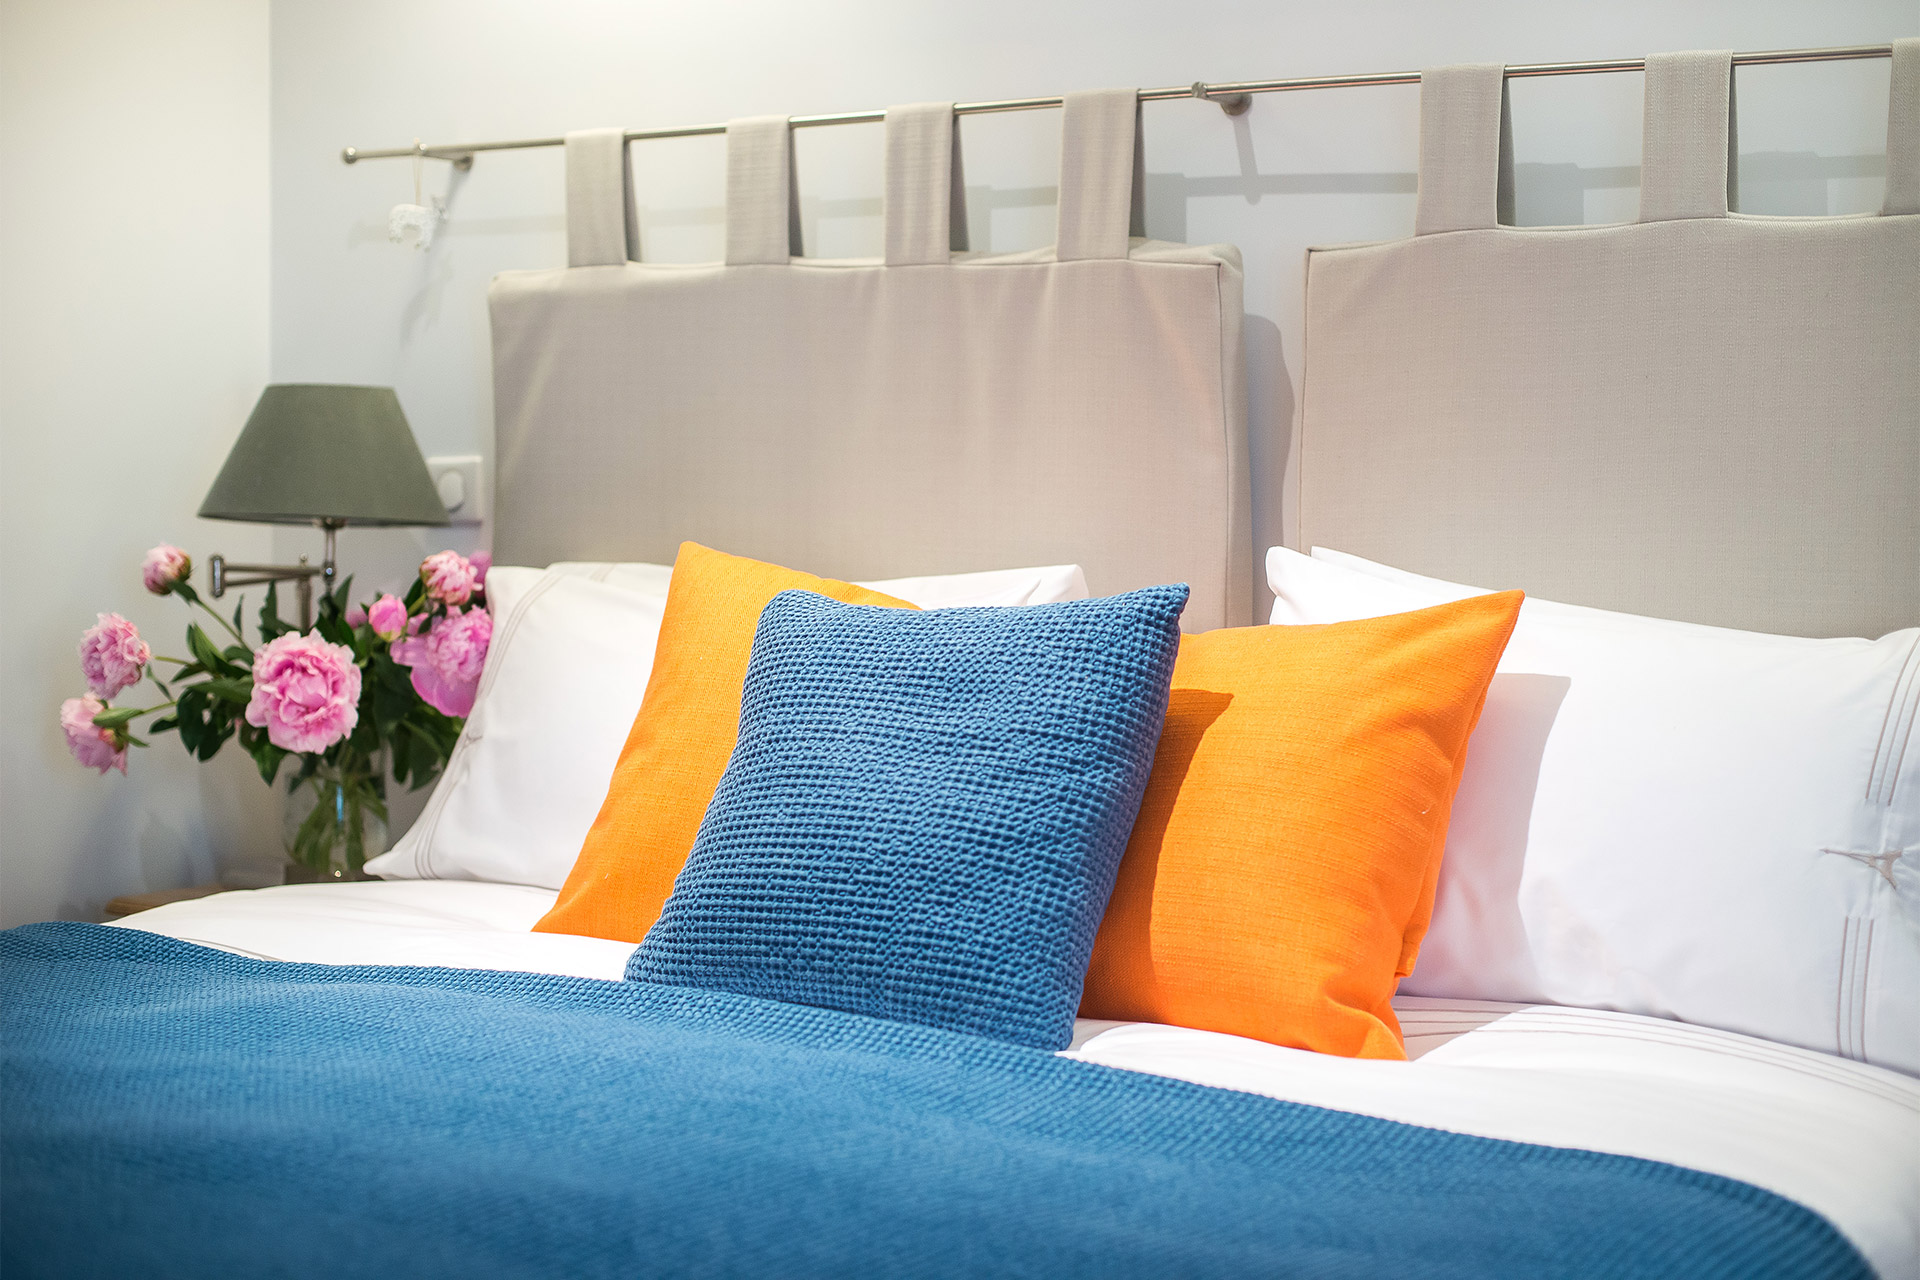 High quality linens on the bed of the Bel-Air vacation rental offered by Paris Perfect